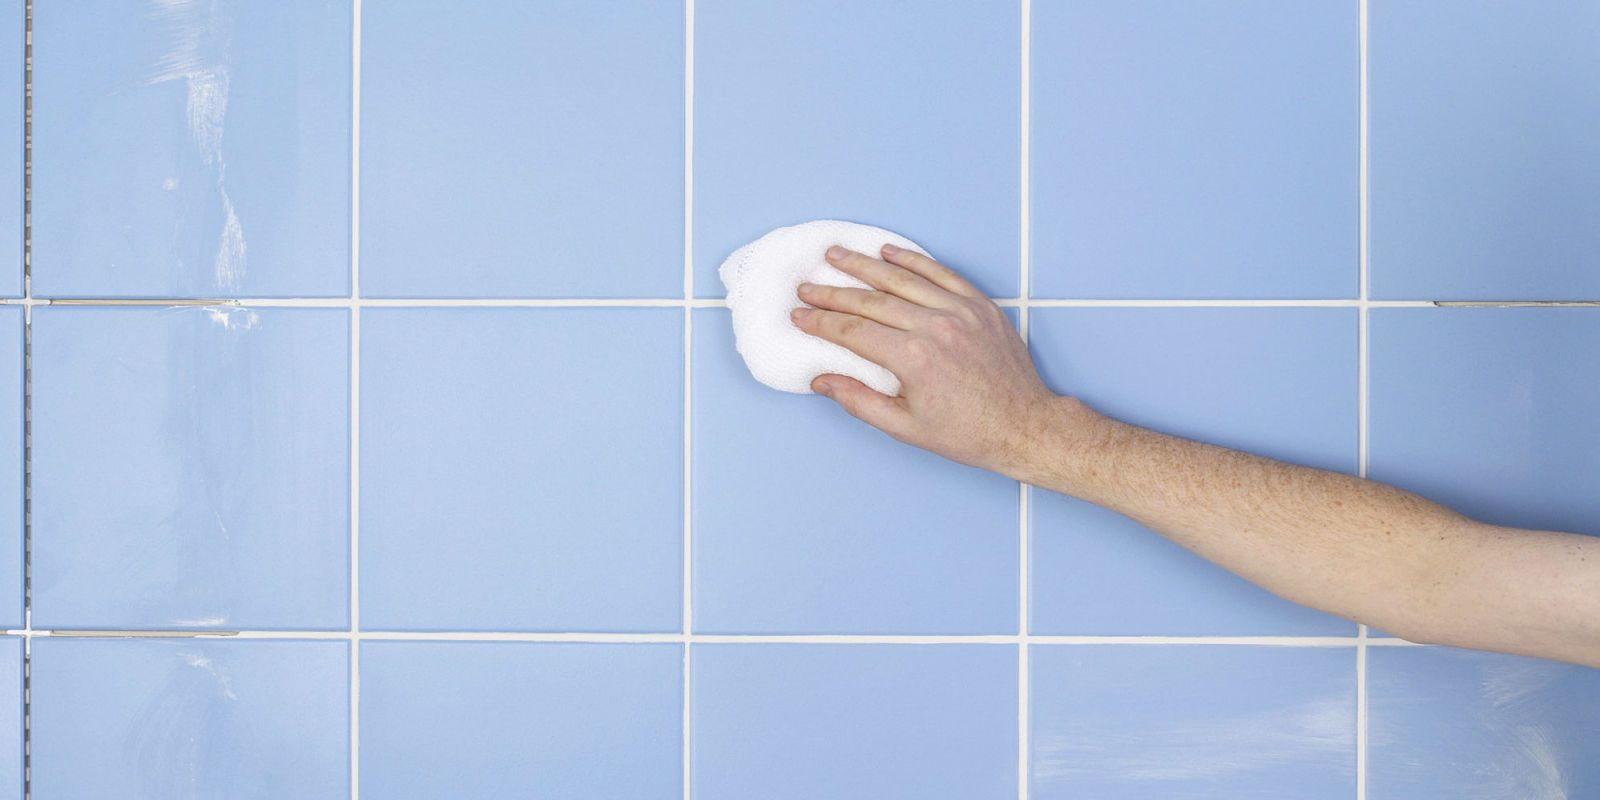 Dish soap is also a great idea to clean grout. Source: Woman's Day